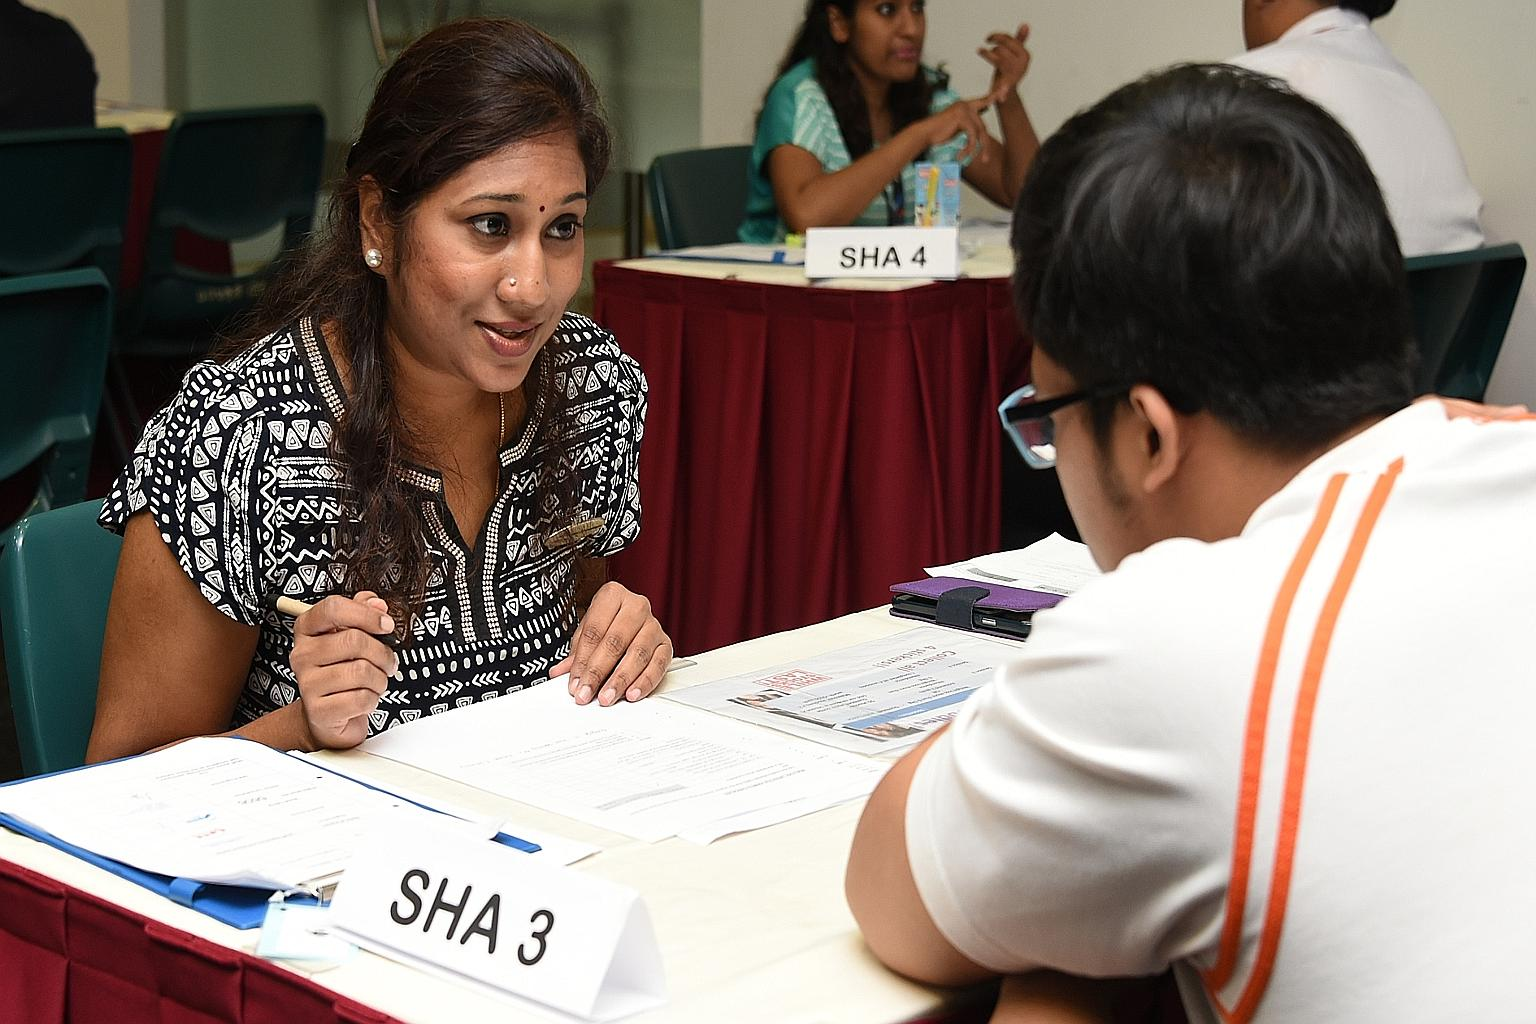 Student health adviser Mageswari D.N. Amaderlingam, 40, offering health advice to a student at ITE College Central.